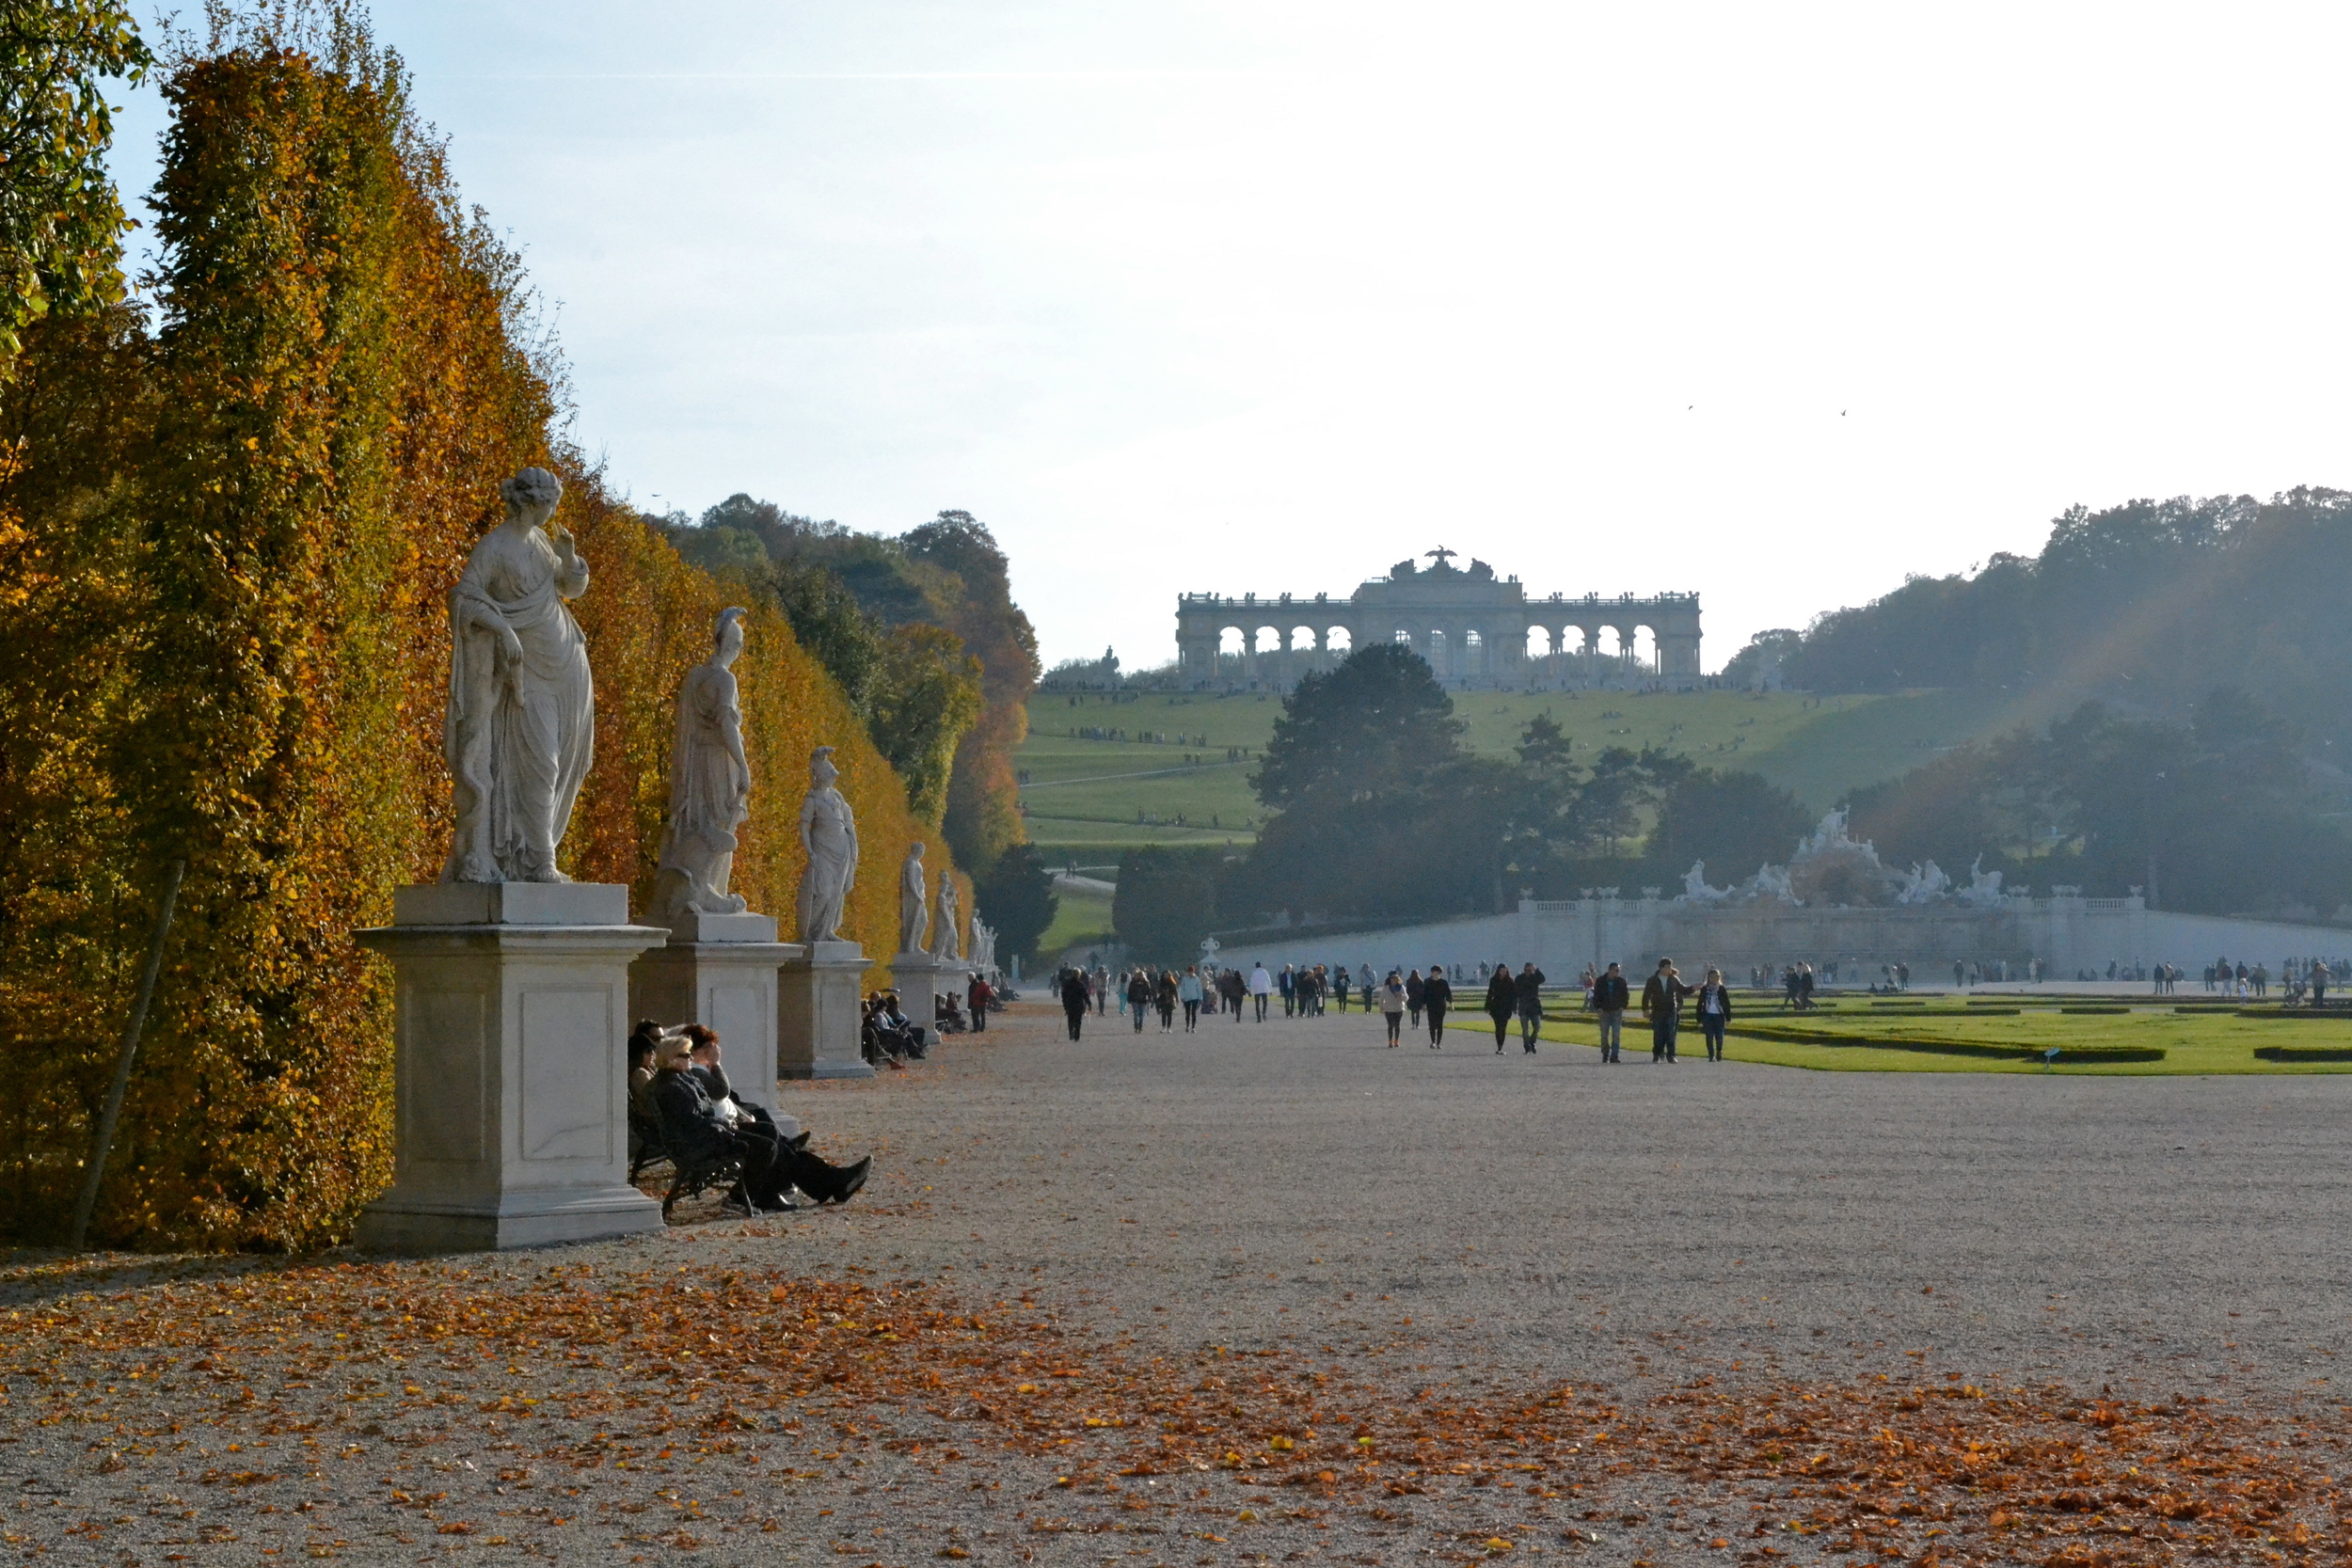 The gardens at the Schönbrunn Palace, with the Gloriette in the distance.